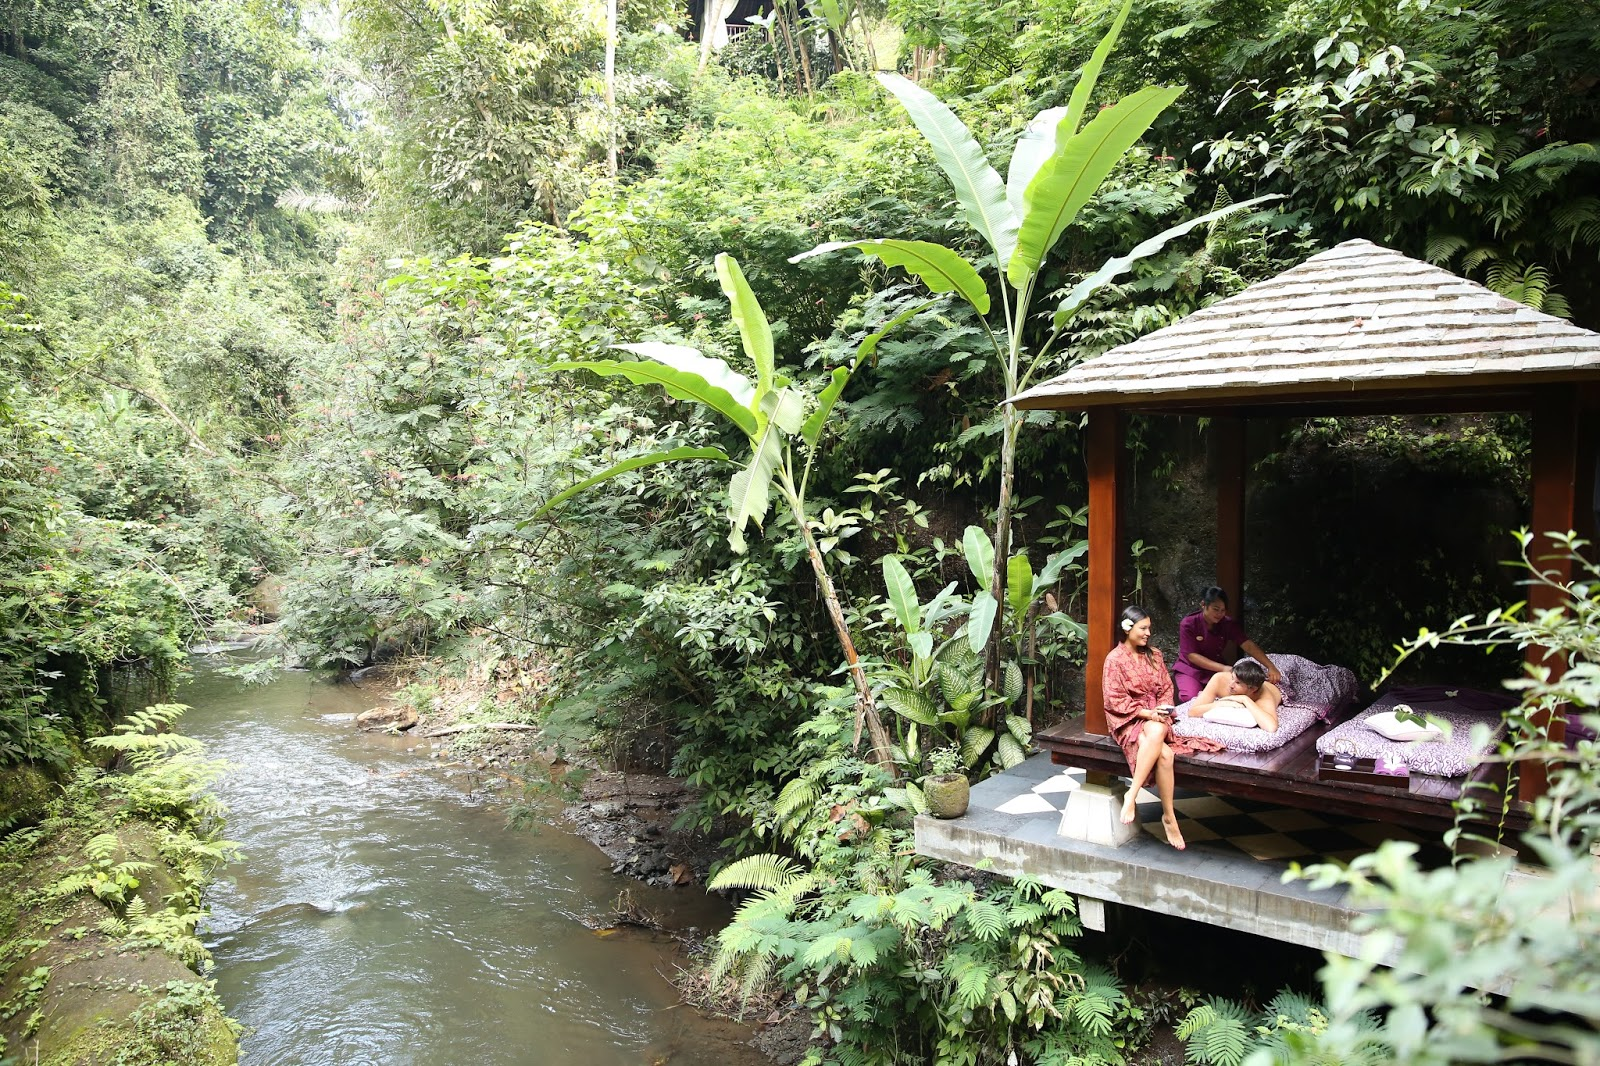 Kee hua chee live hang out in hanging gardens ubud for Hanging garden pool ubud